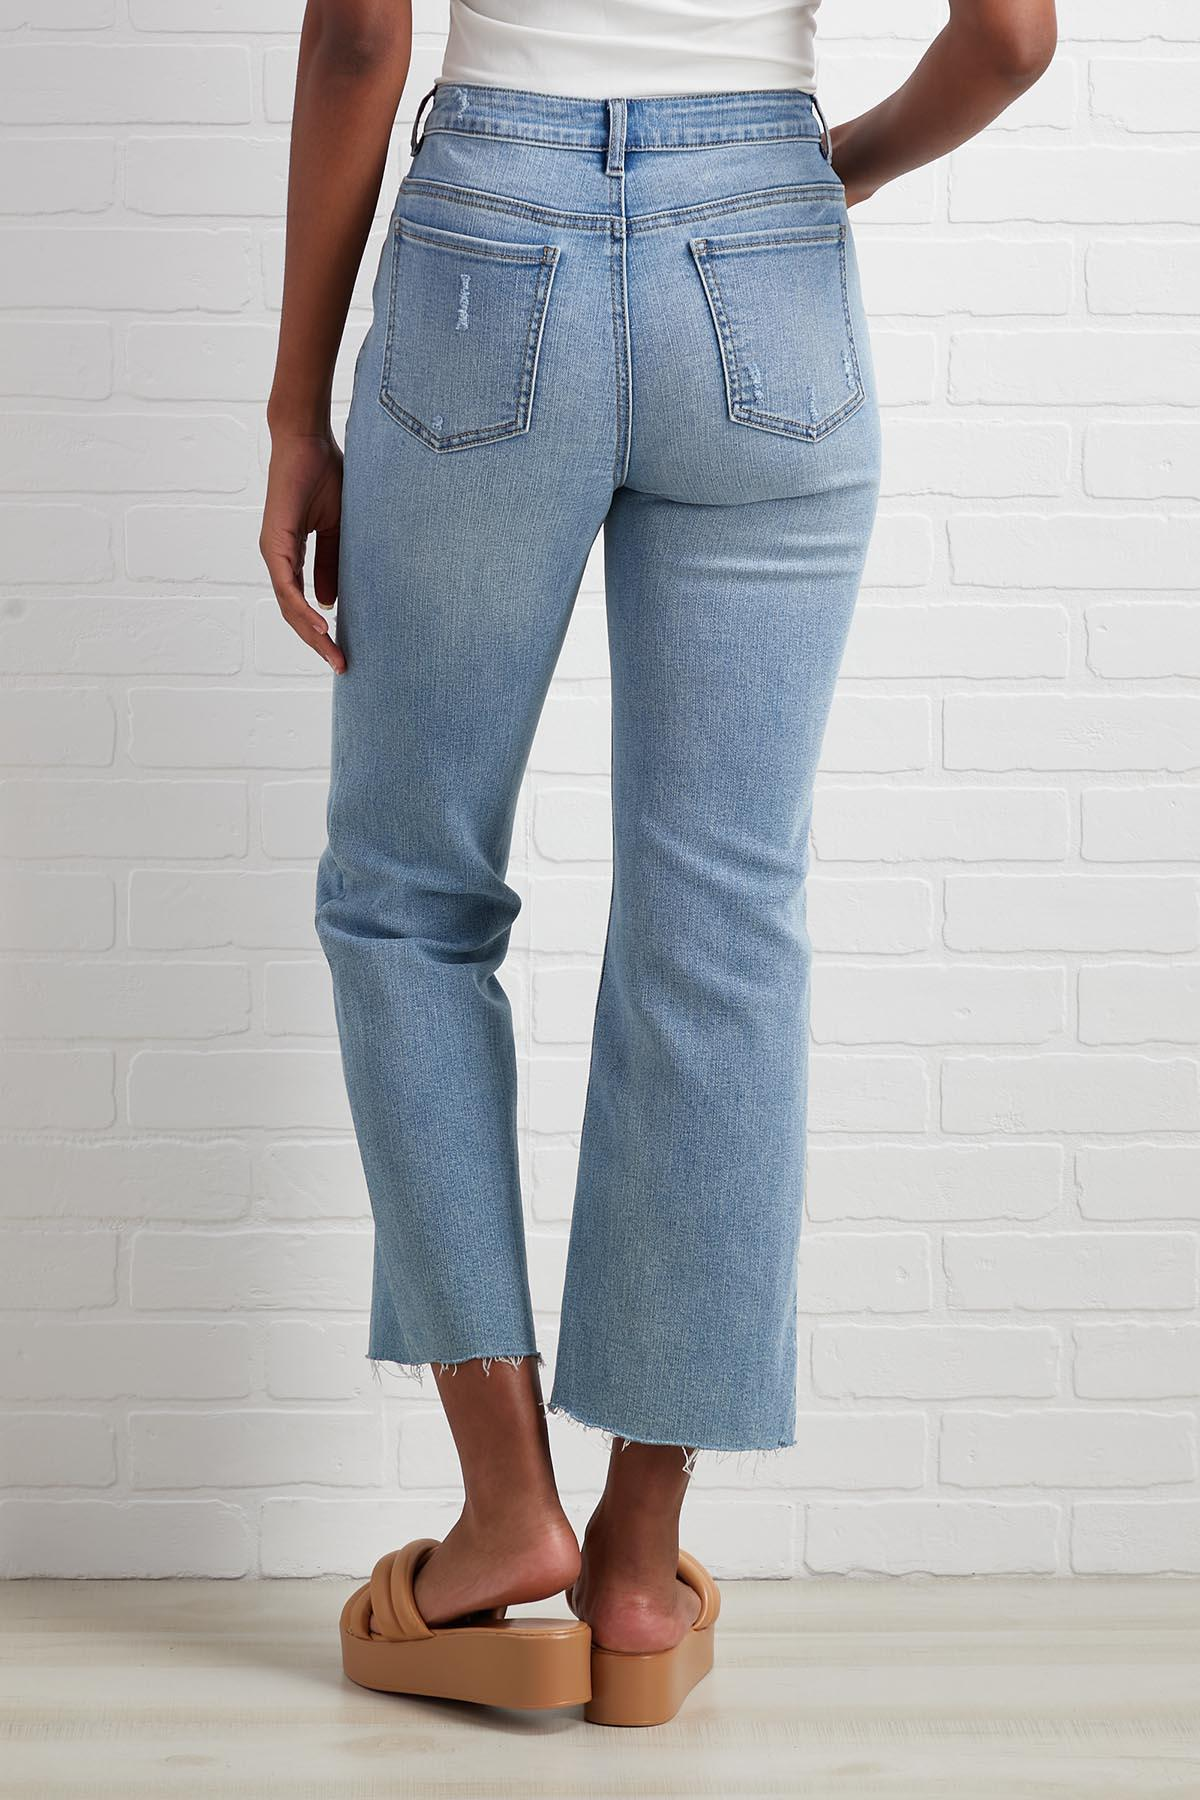 See The Lightwash Jeans